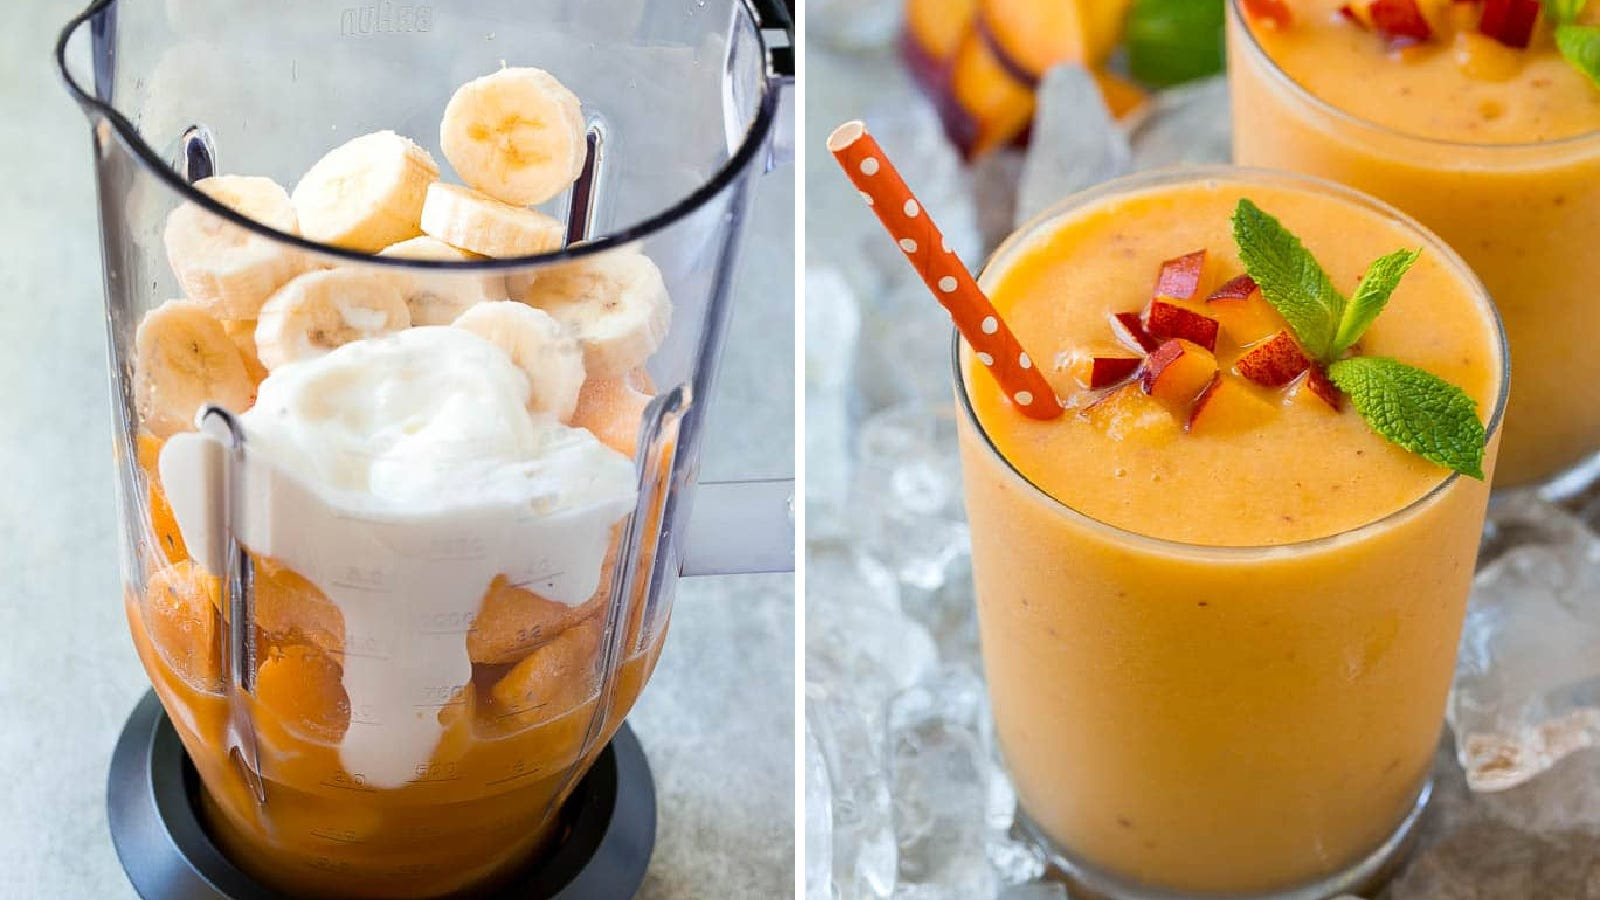 Two images featuring a peach smoothie. The left is the blender filled with all ingredients used to make the smoothie and the right image is the finished product garnished with mint leaves and diced peach.